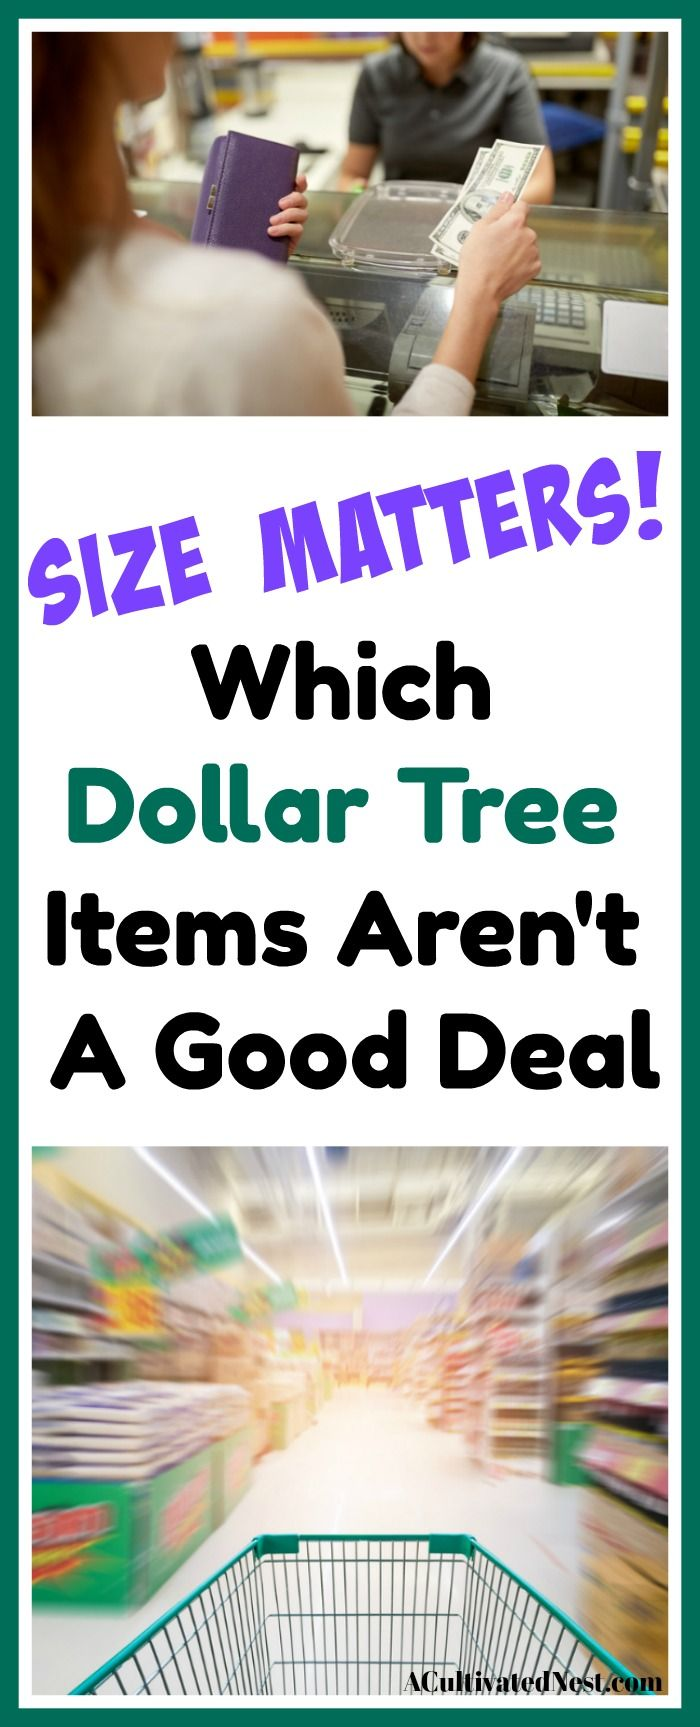 357a41bc9d3 Do you shop at the dollar store? Check out my list to find which Dollar  Tree items simply aren't a deal so you can shop smarter!